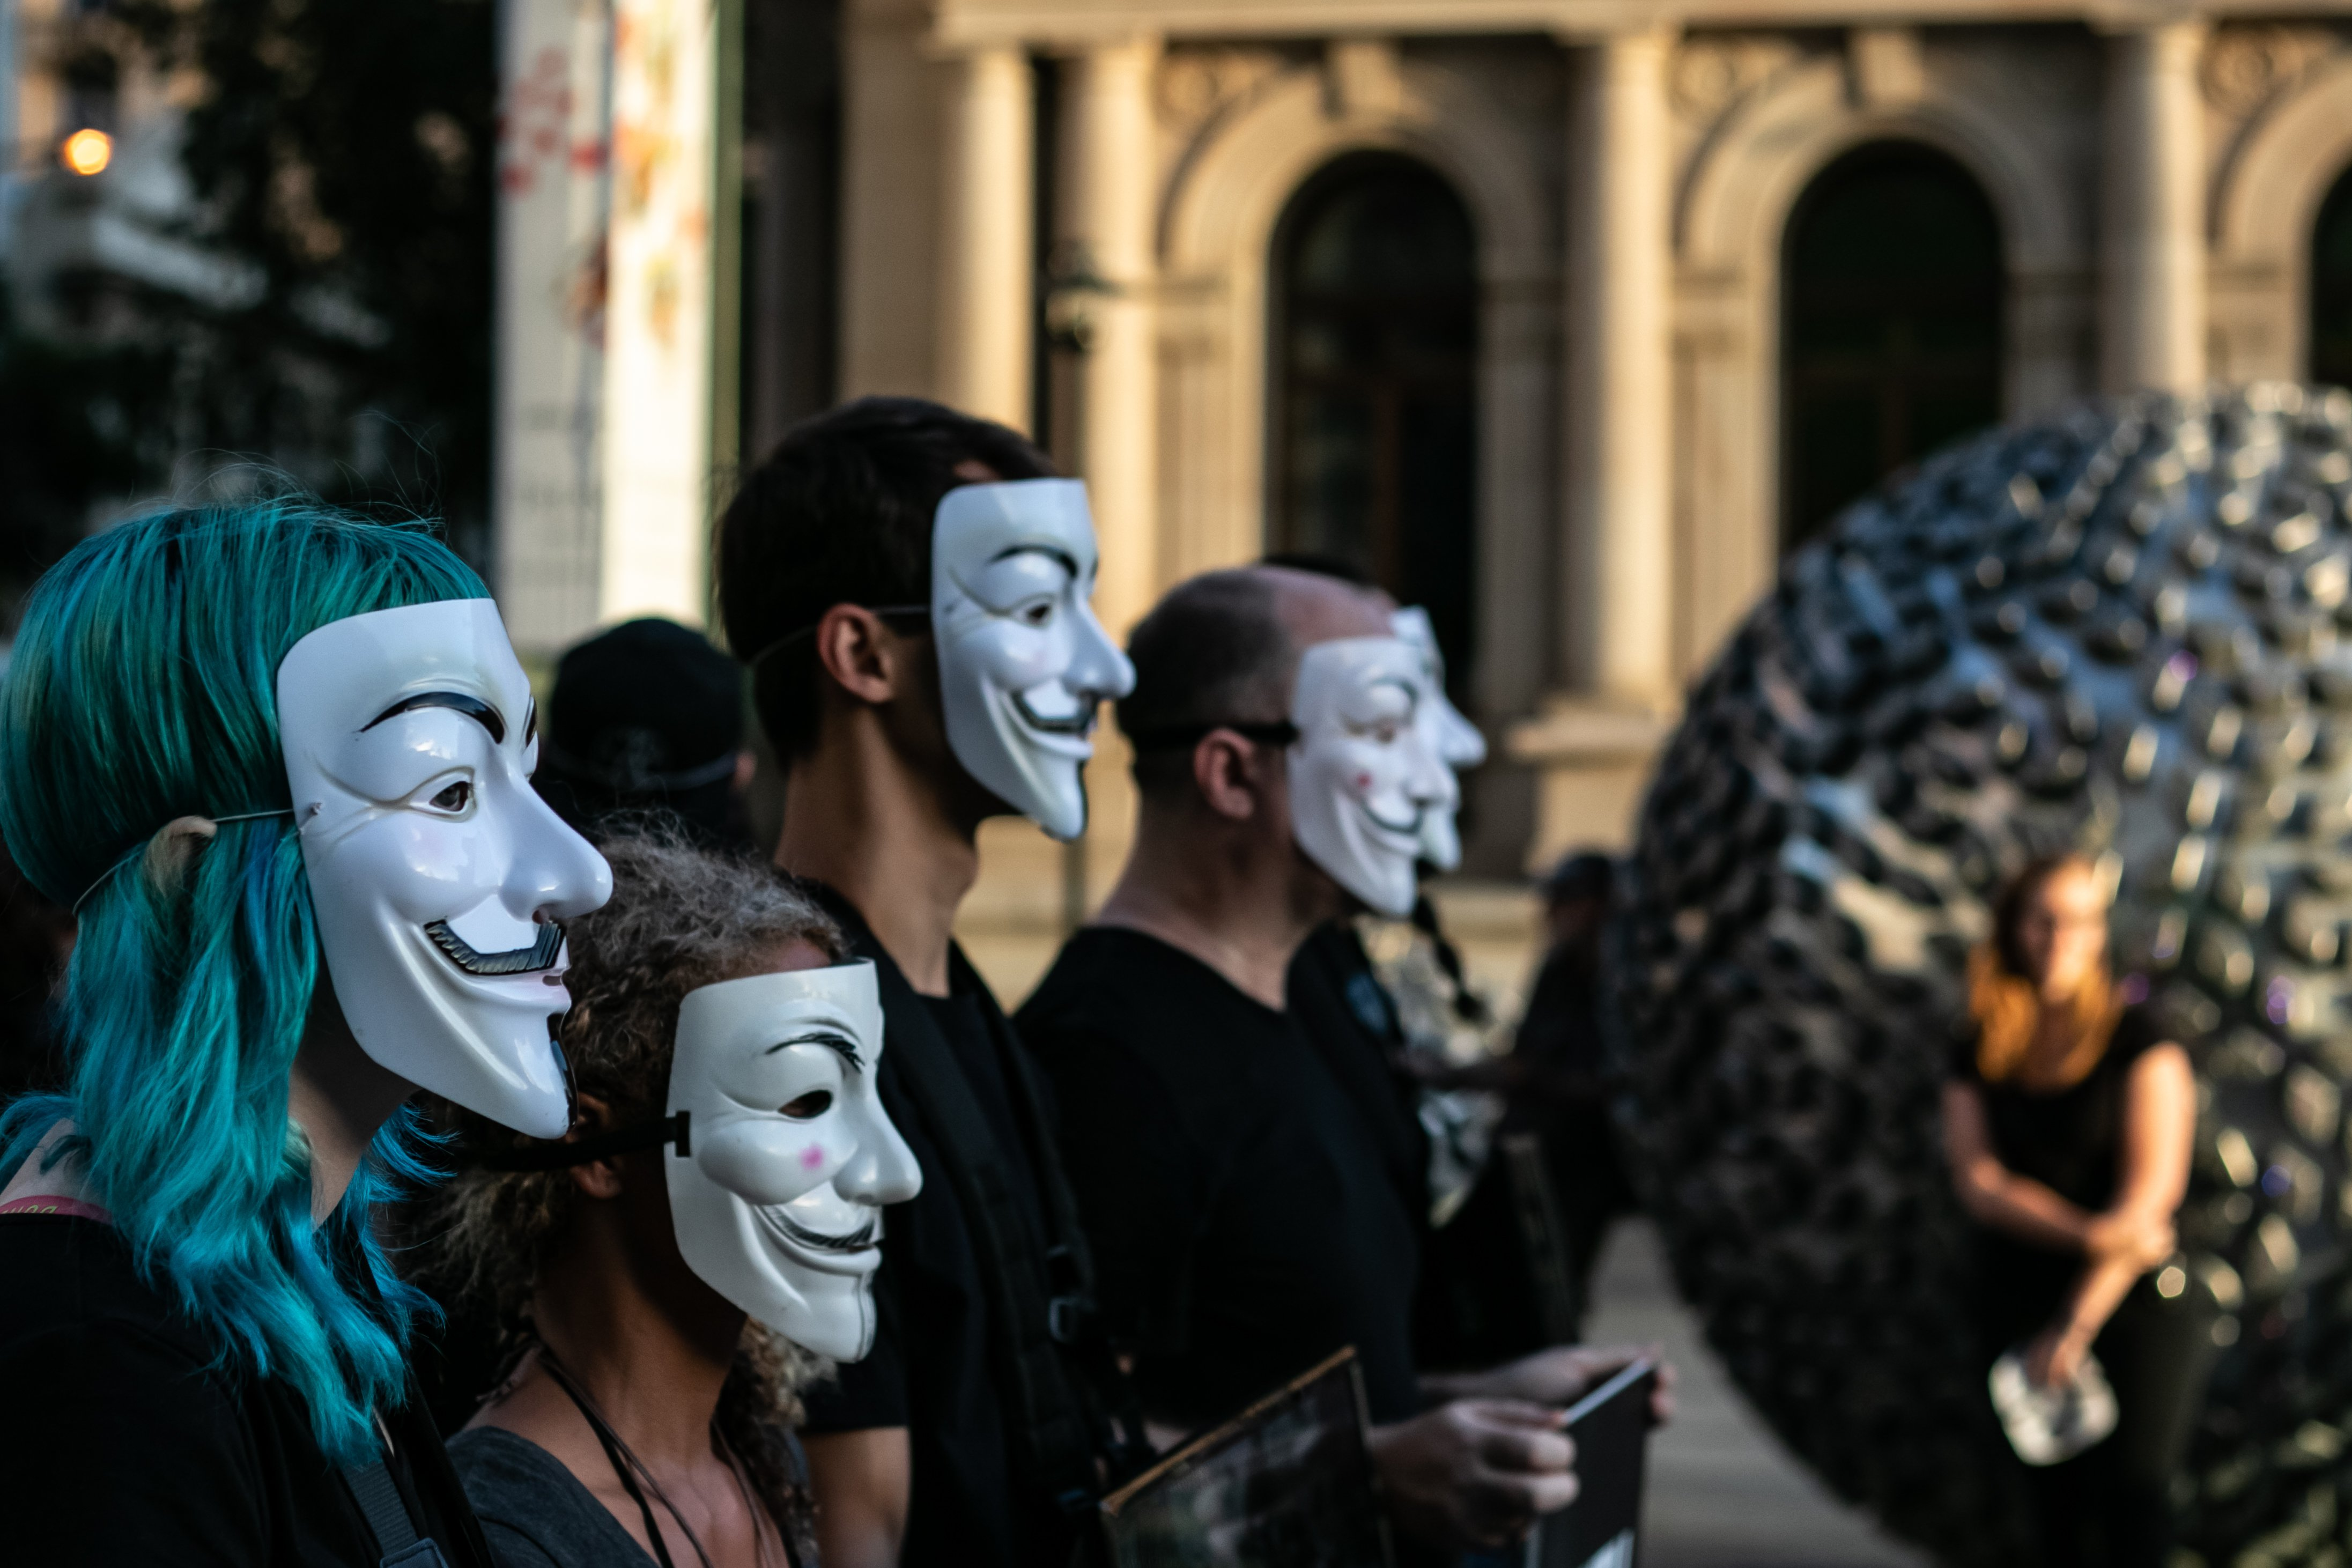 A crowd in a protest wearing Guy Fawkes masks.